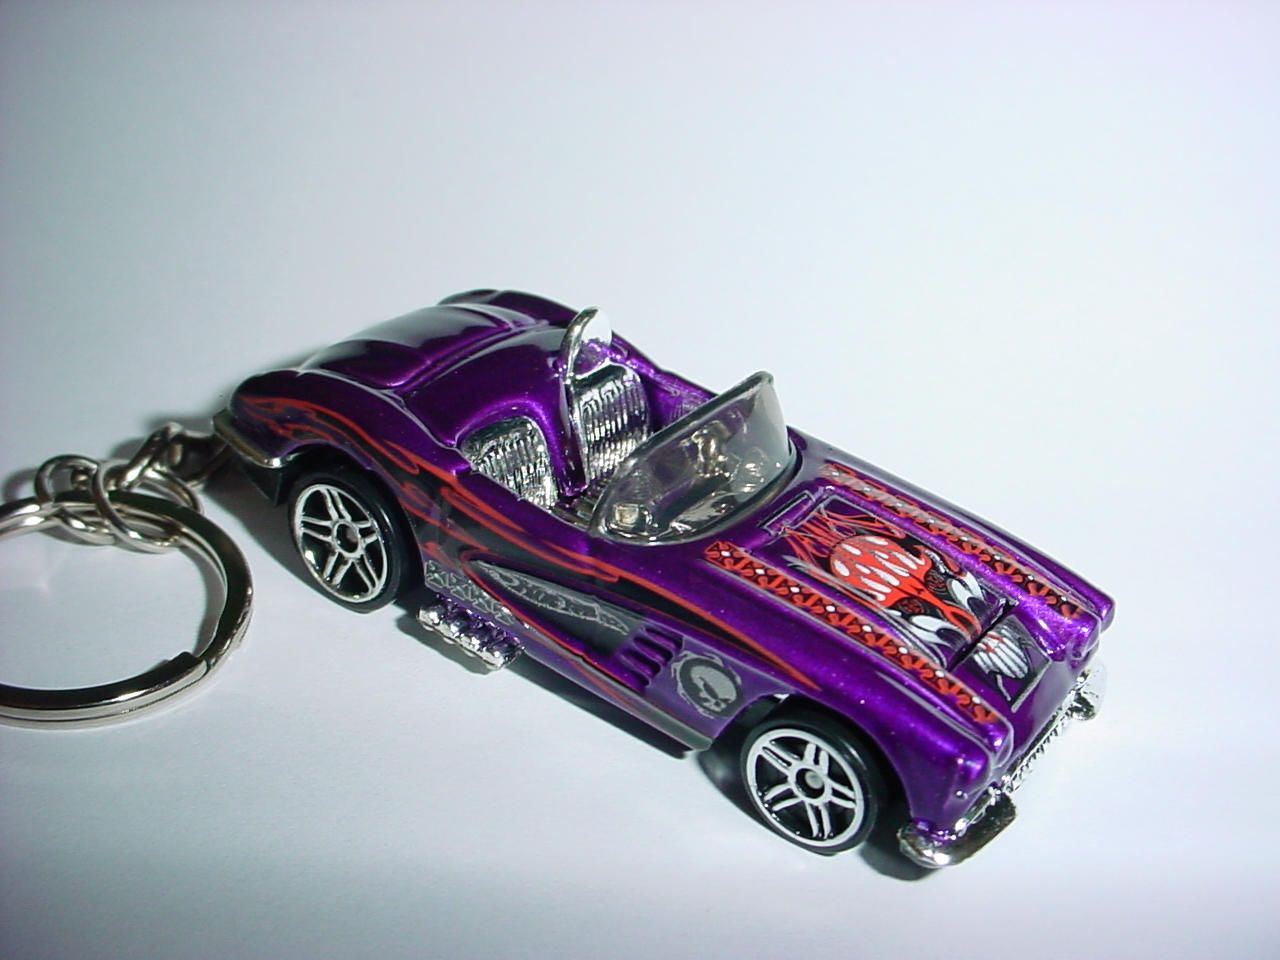 New 3D 1958 Chevrolet Corvette Custom Keychain keyring key chain by Brian Thornton finished in purple/flames racing color trim 58 by Thorntongifts on Etsy